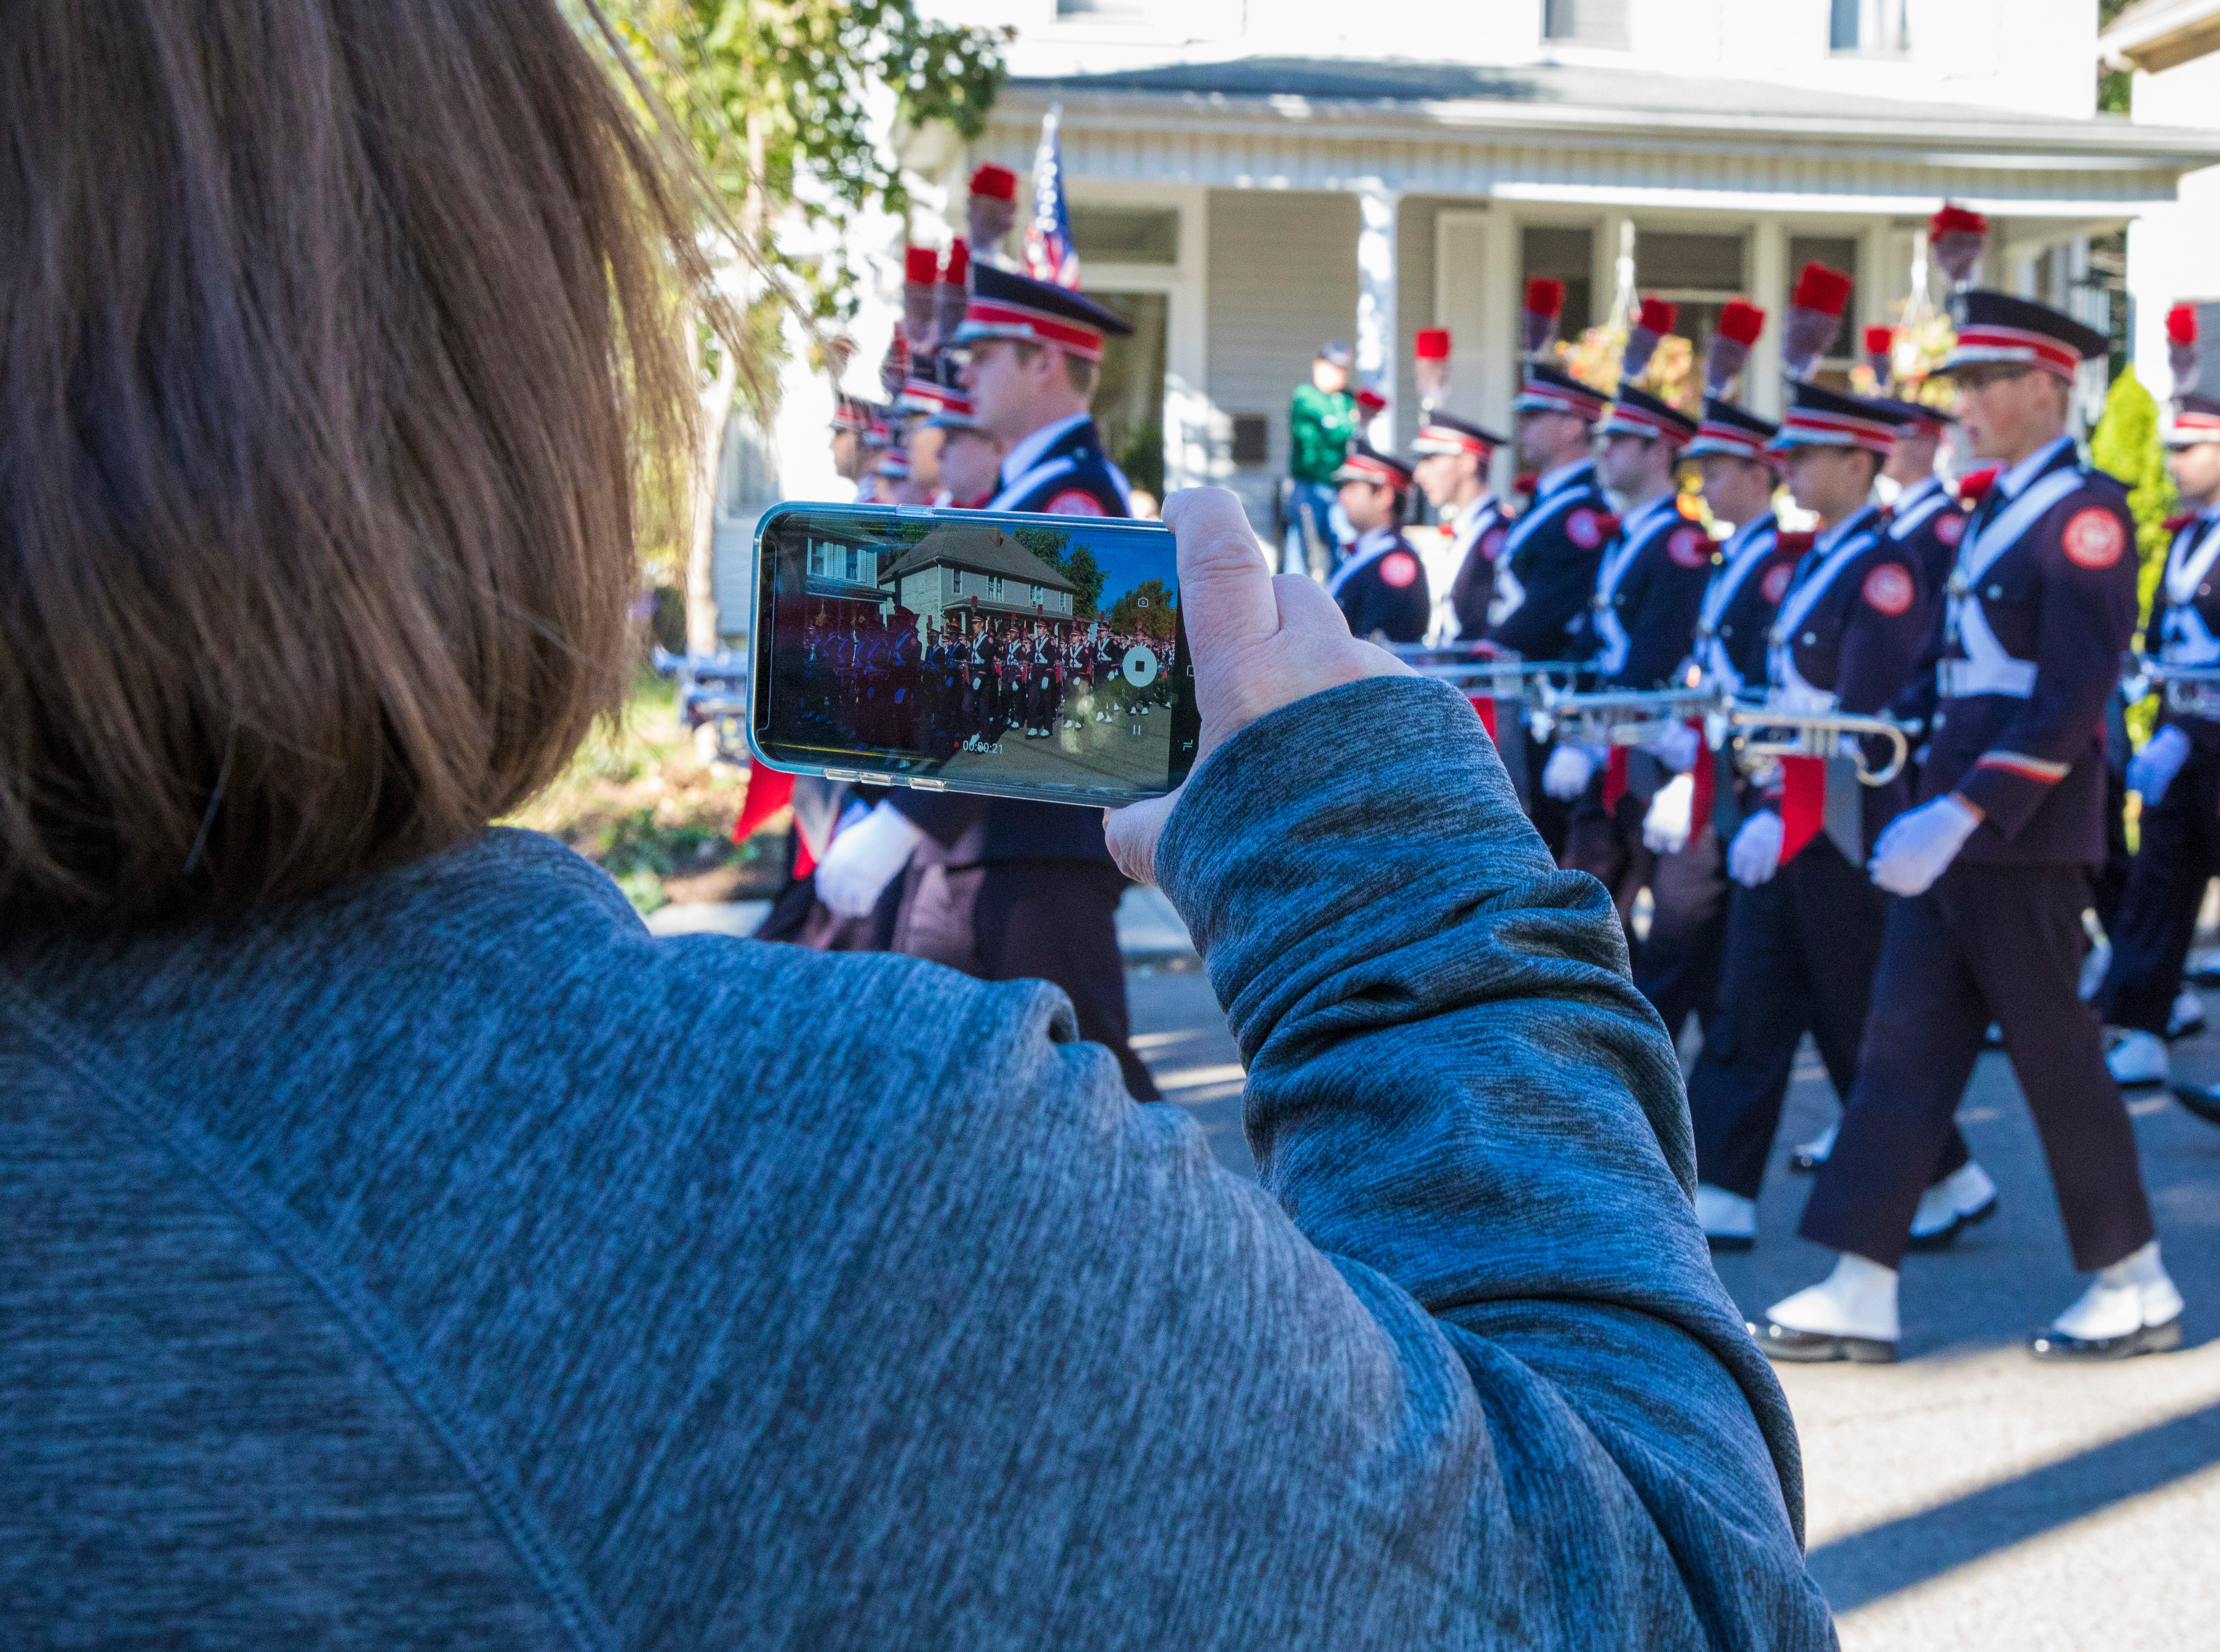 A local resident stands on the sidewalk and watches THE Ohio State Band perform down Arch Street and takes video before their performance at Chillicothe's Herrnstein field on Sunday, October 21, 2018.